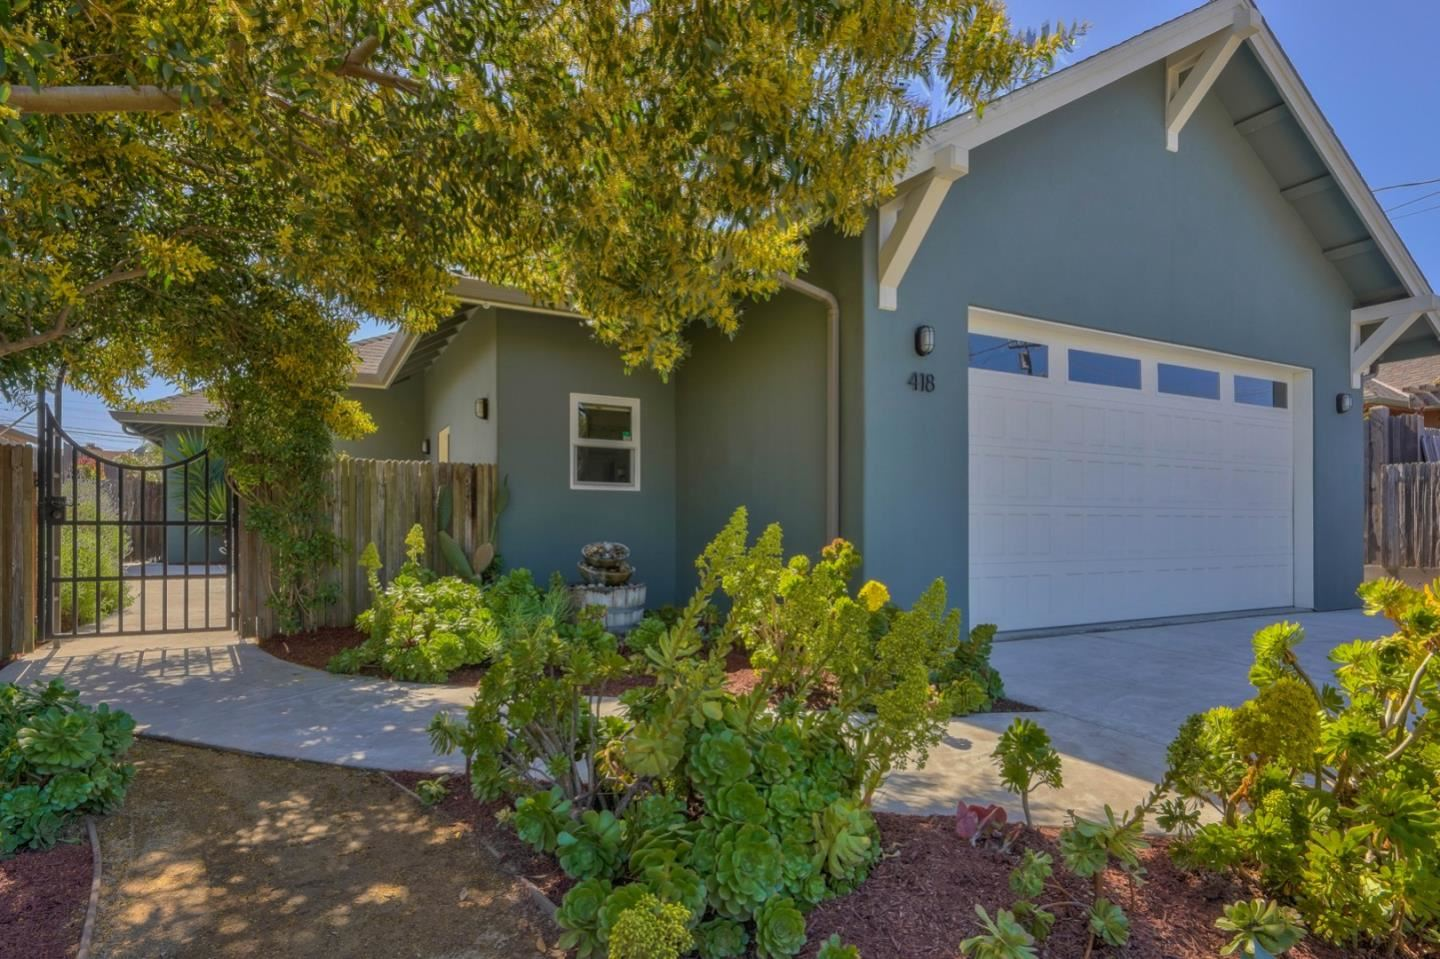 Photo for 418 English AVE, MONTEREY, CA 93940 (MLS # ML81837387)